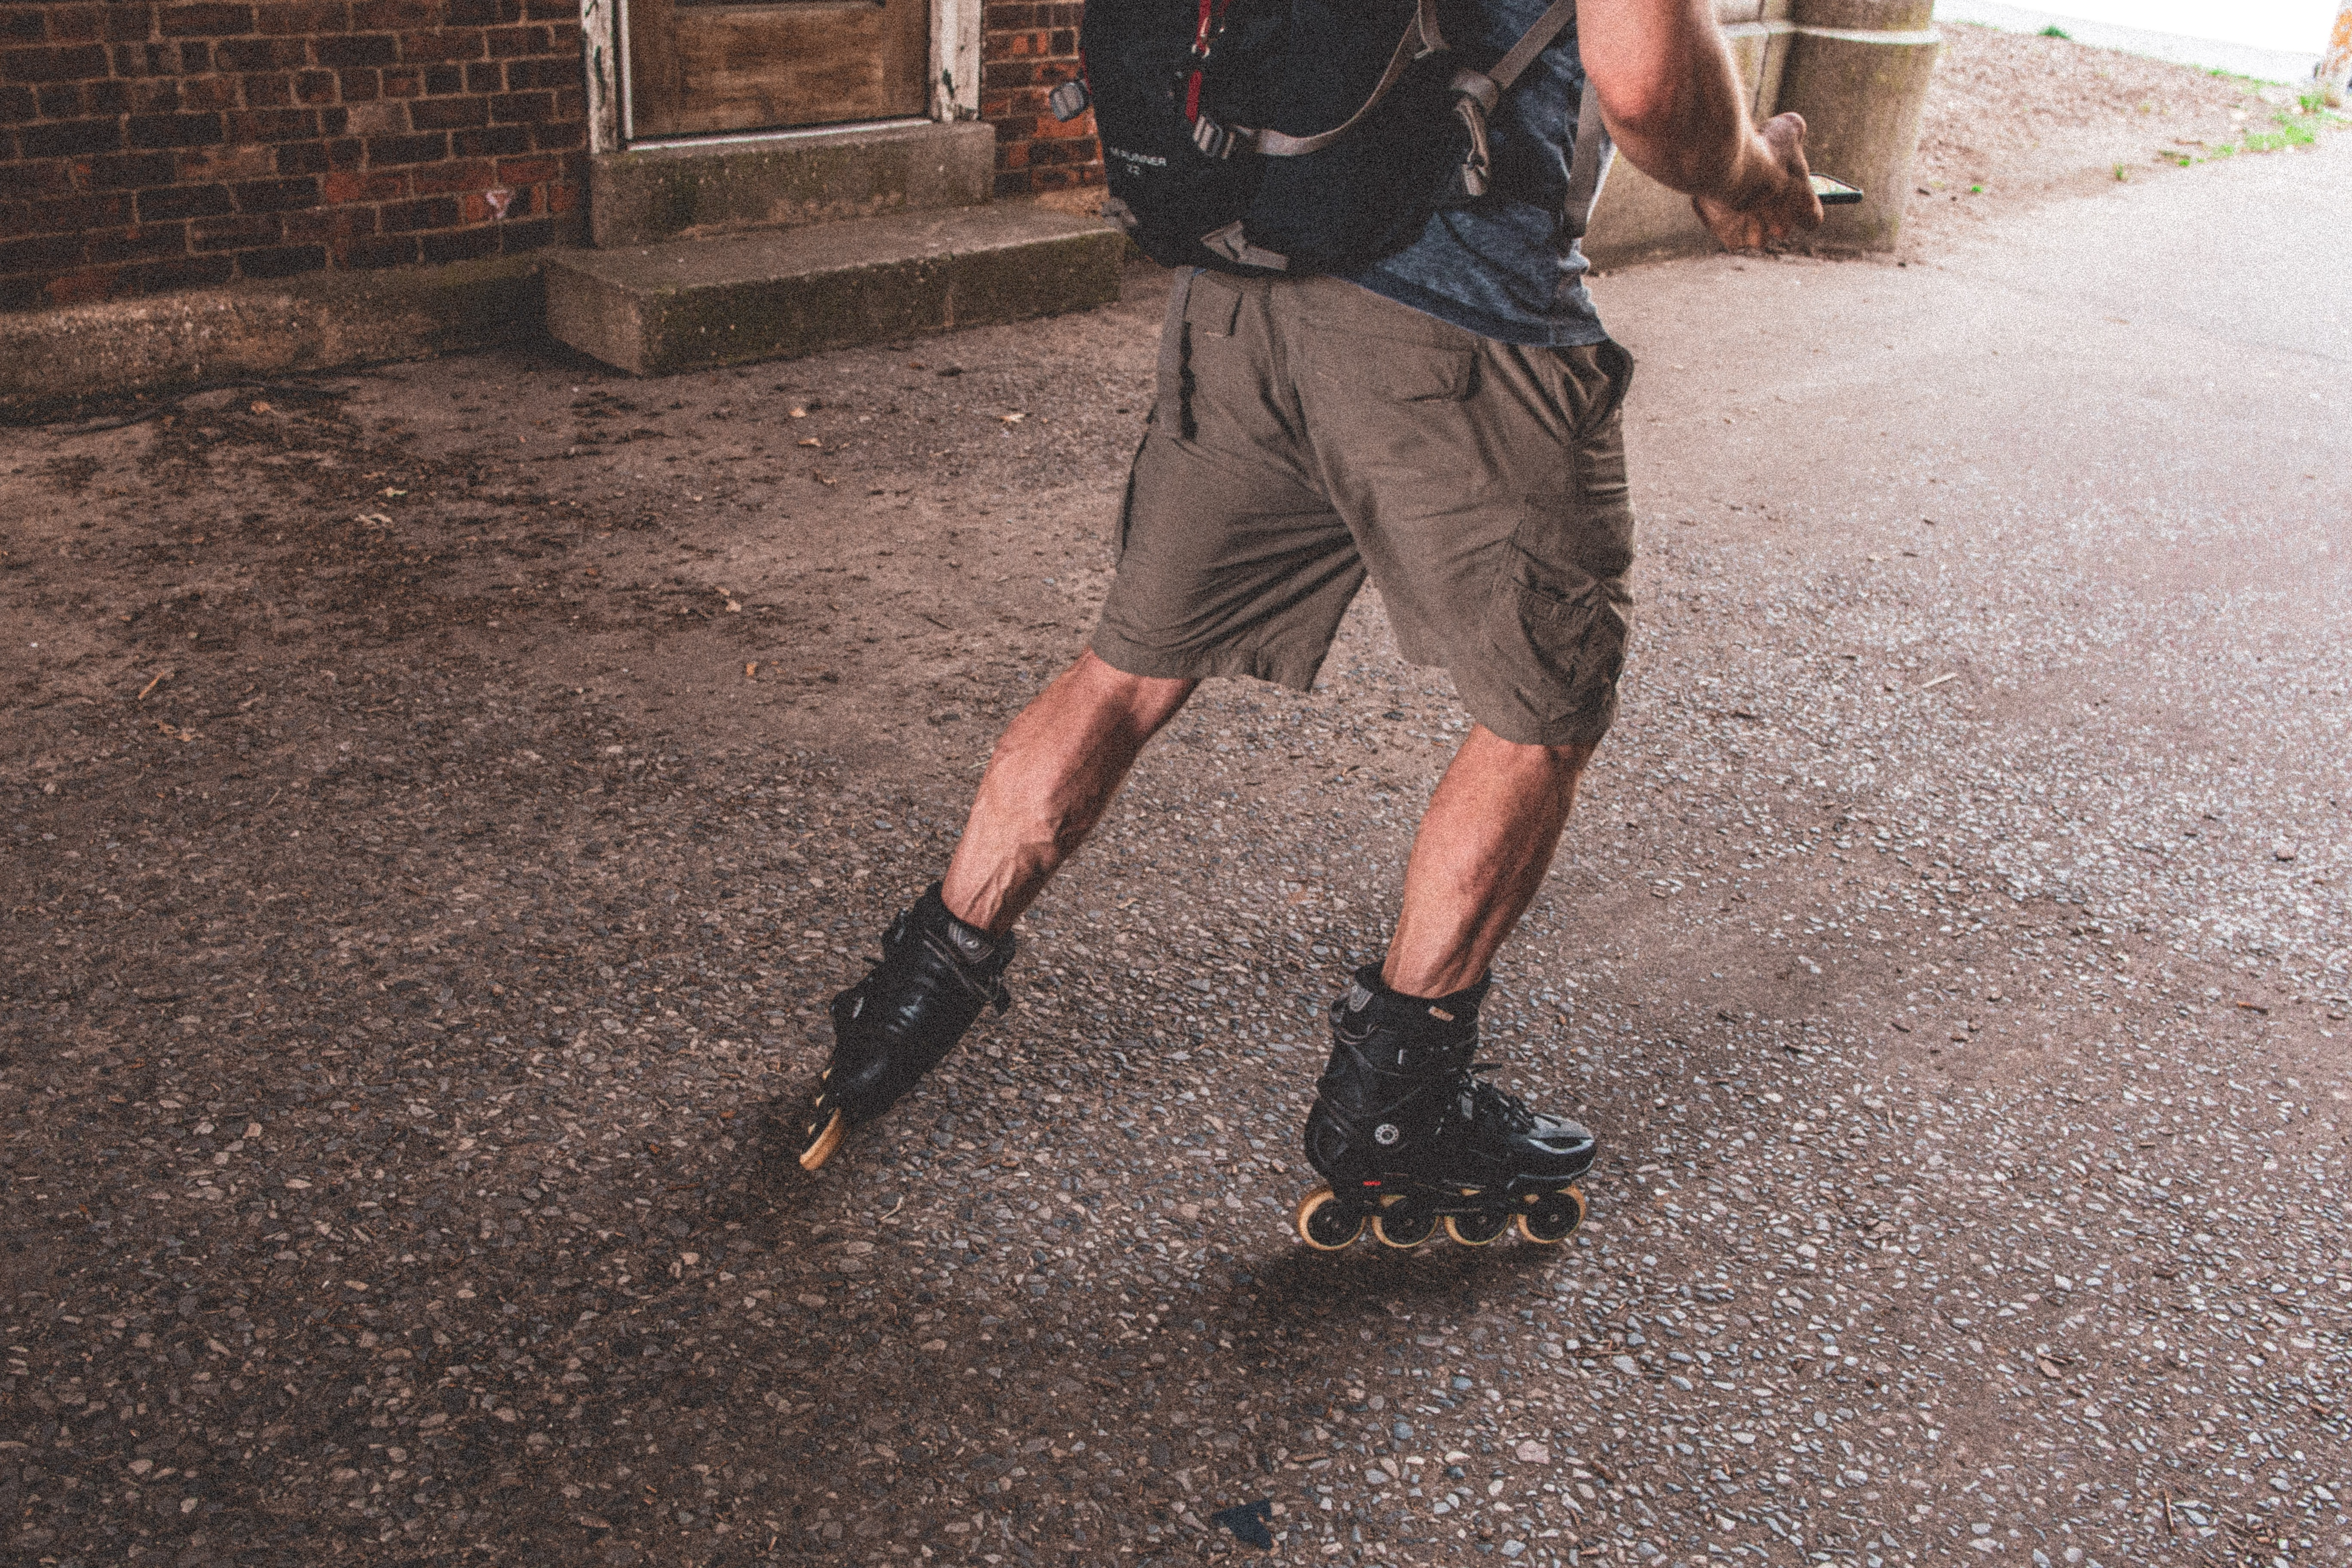 Roller Skates To Fit On Size 7 Shoes